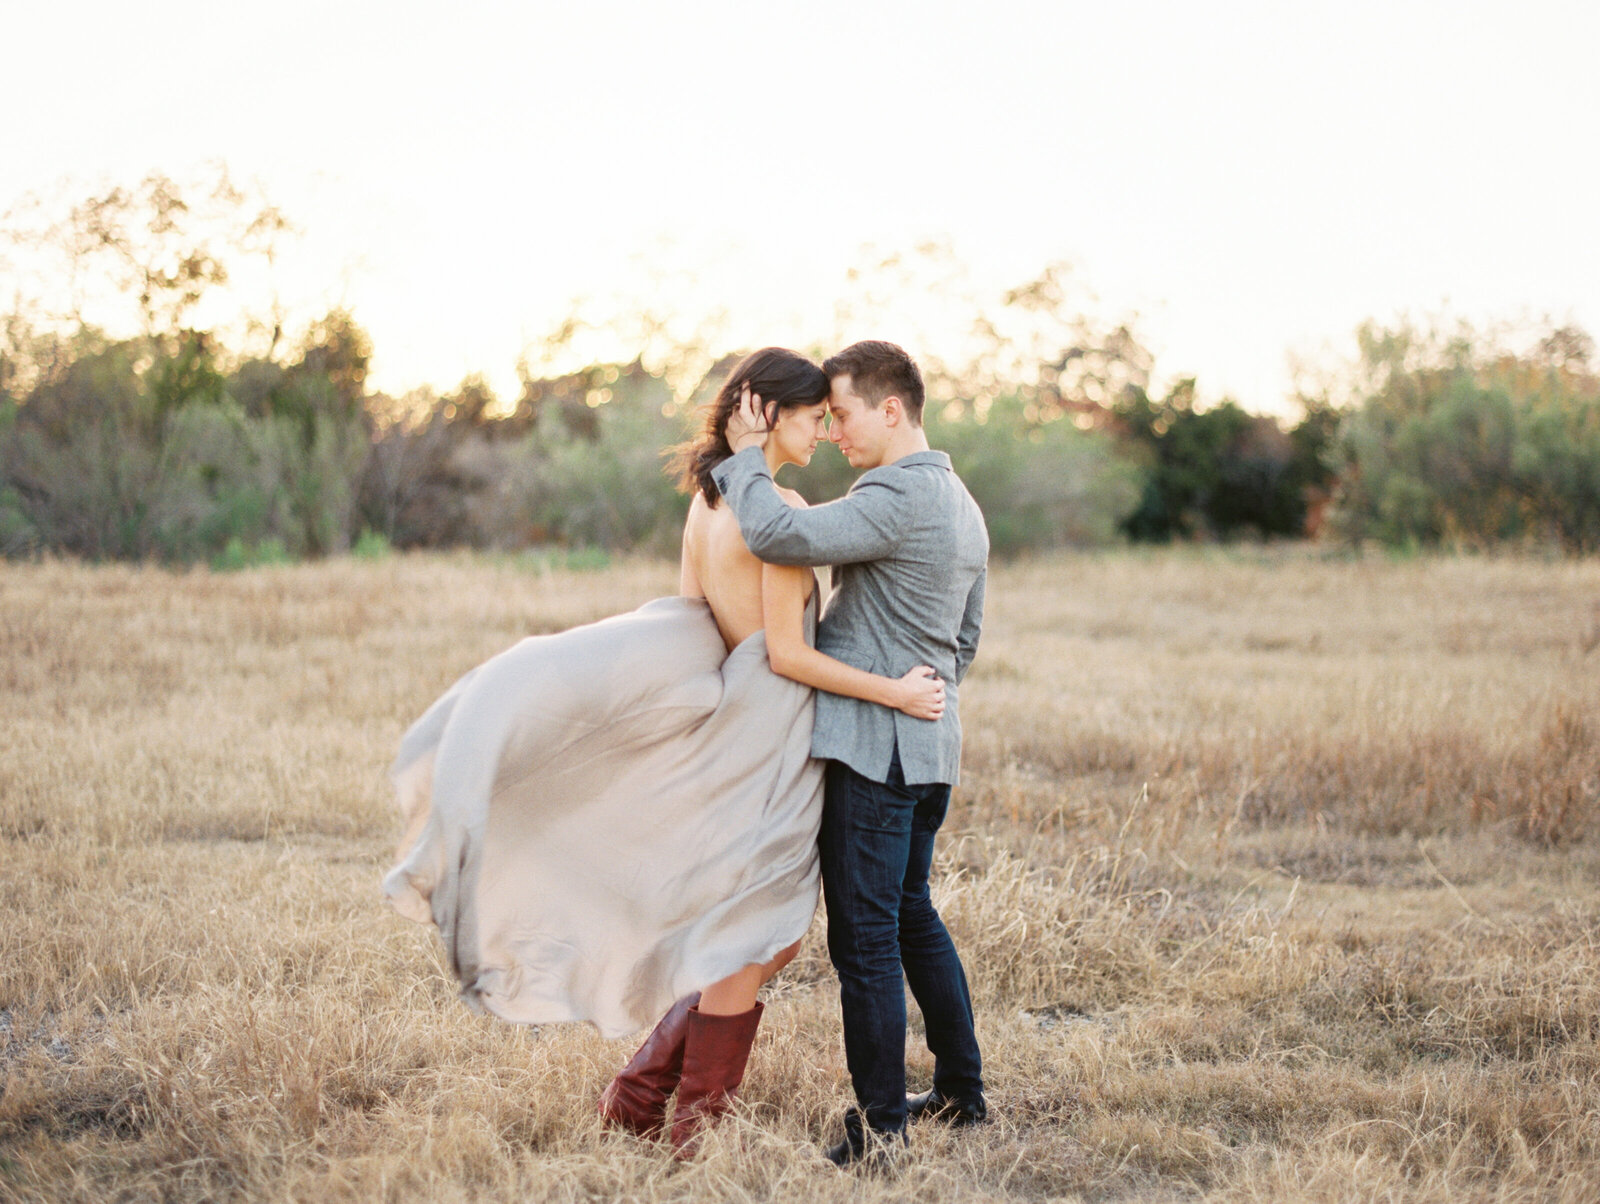 Dallas_Engagement_Photographer_Joshua_Aull_Photography_0003